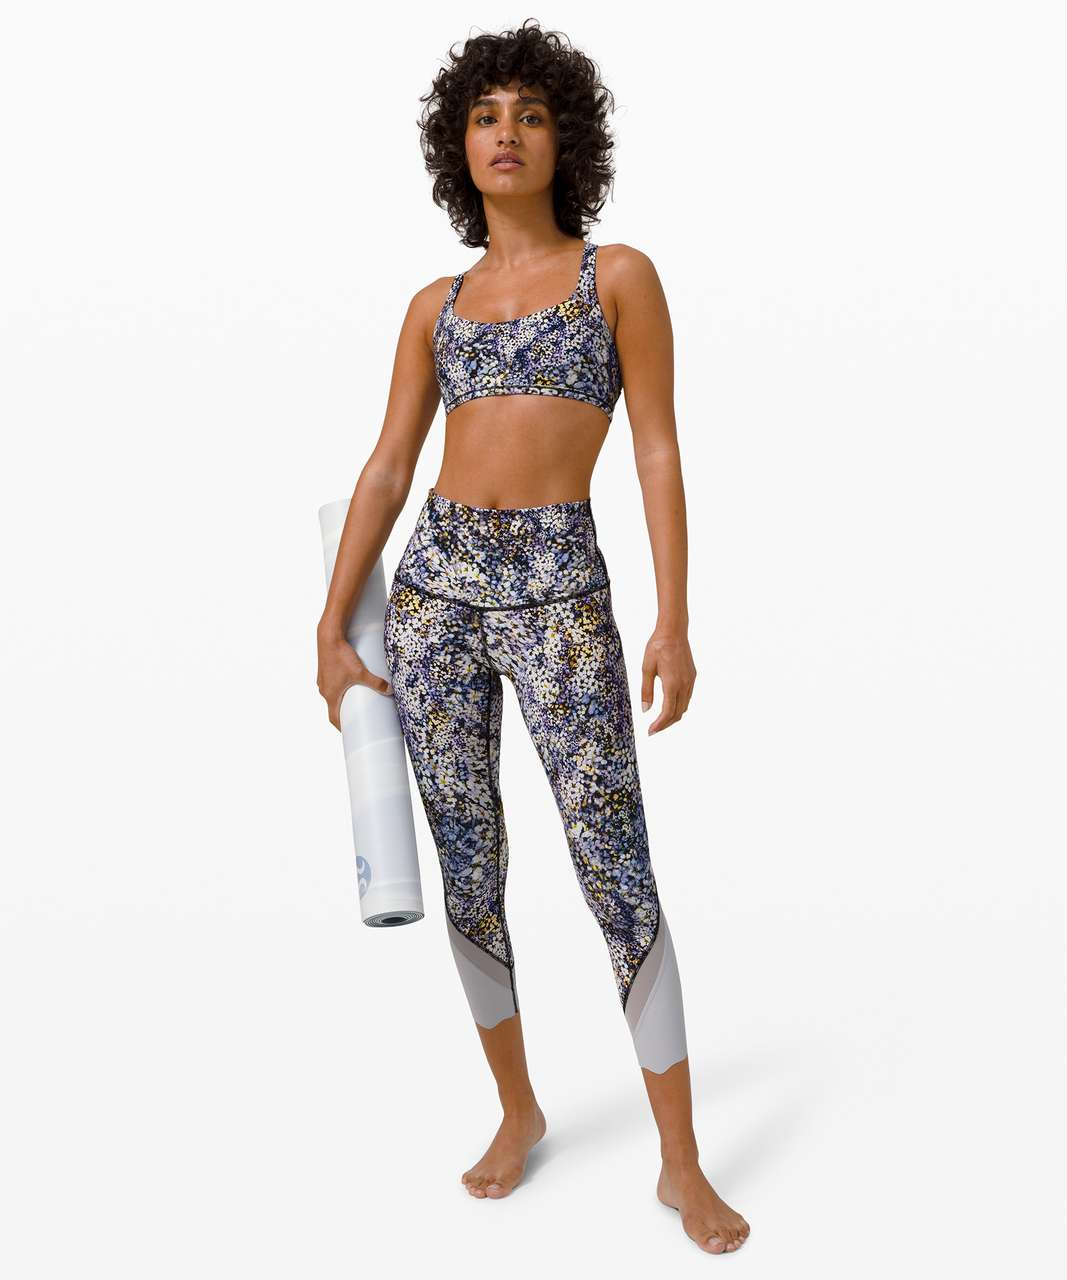 Lululemon Free To Be Bra Wild *Light Support, A/B Cup - Floral Metropolis Multi